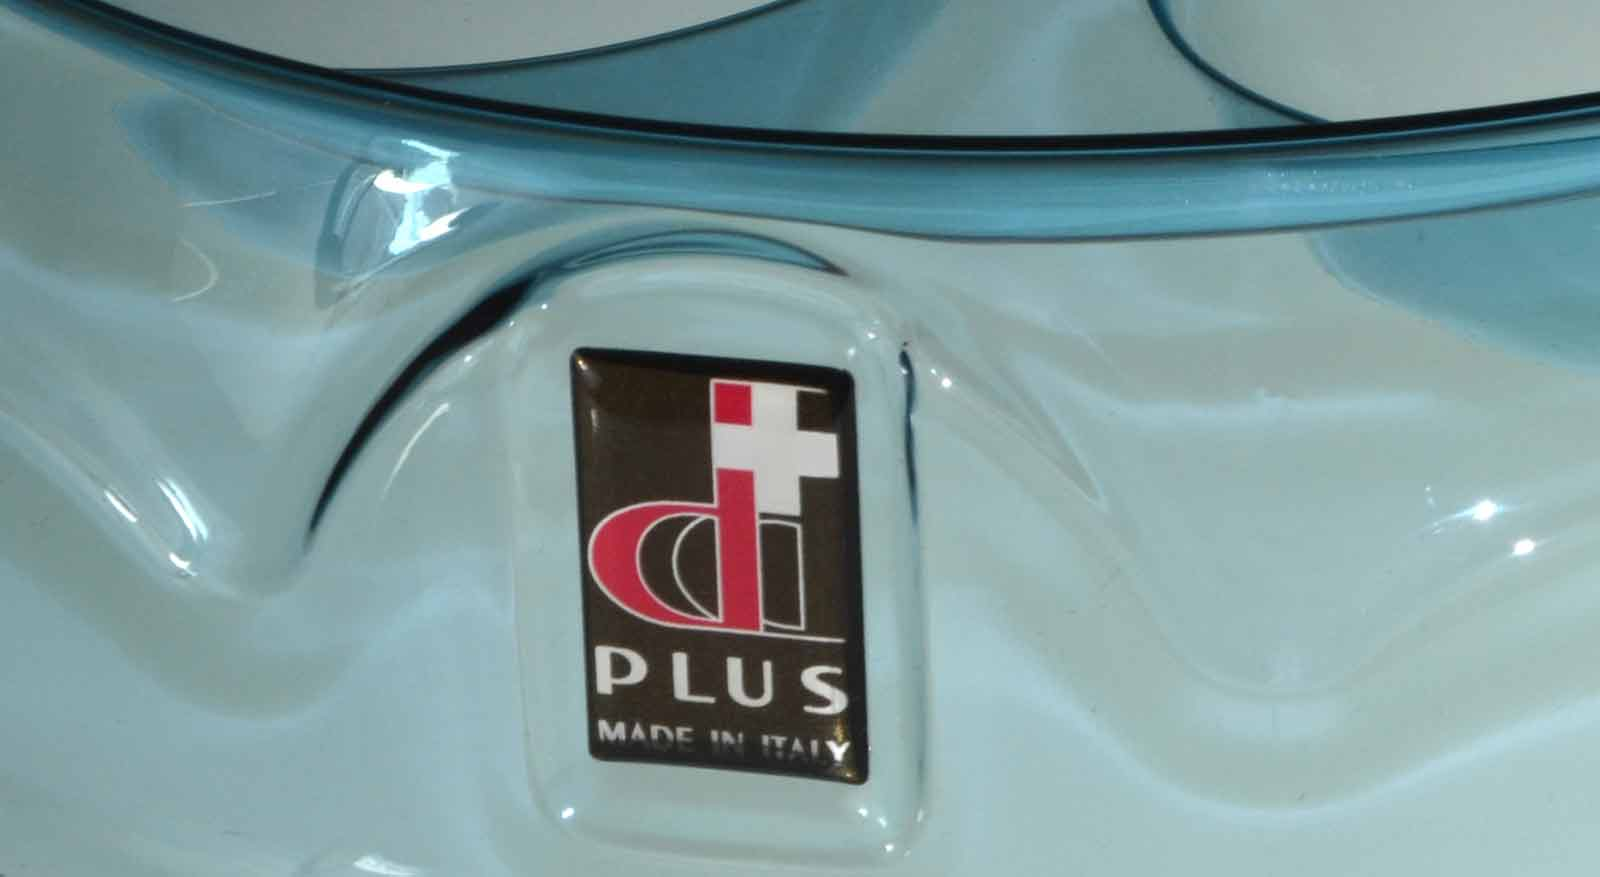 DDplus-design-and-product-home